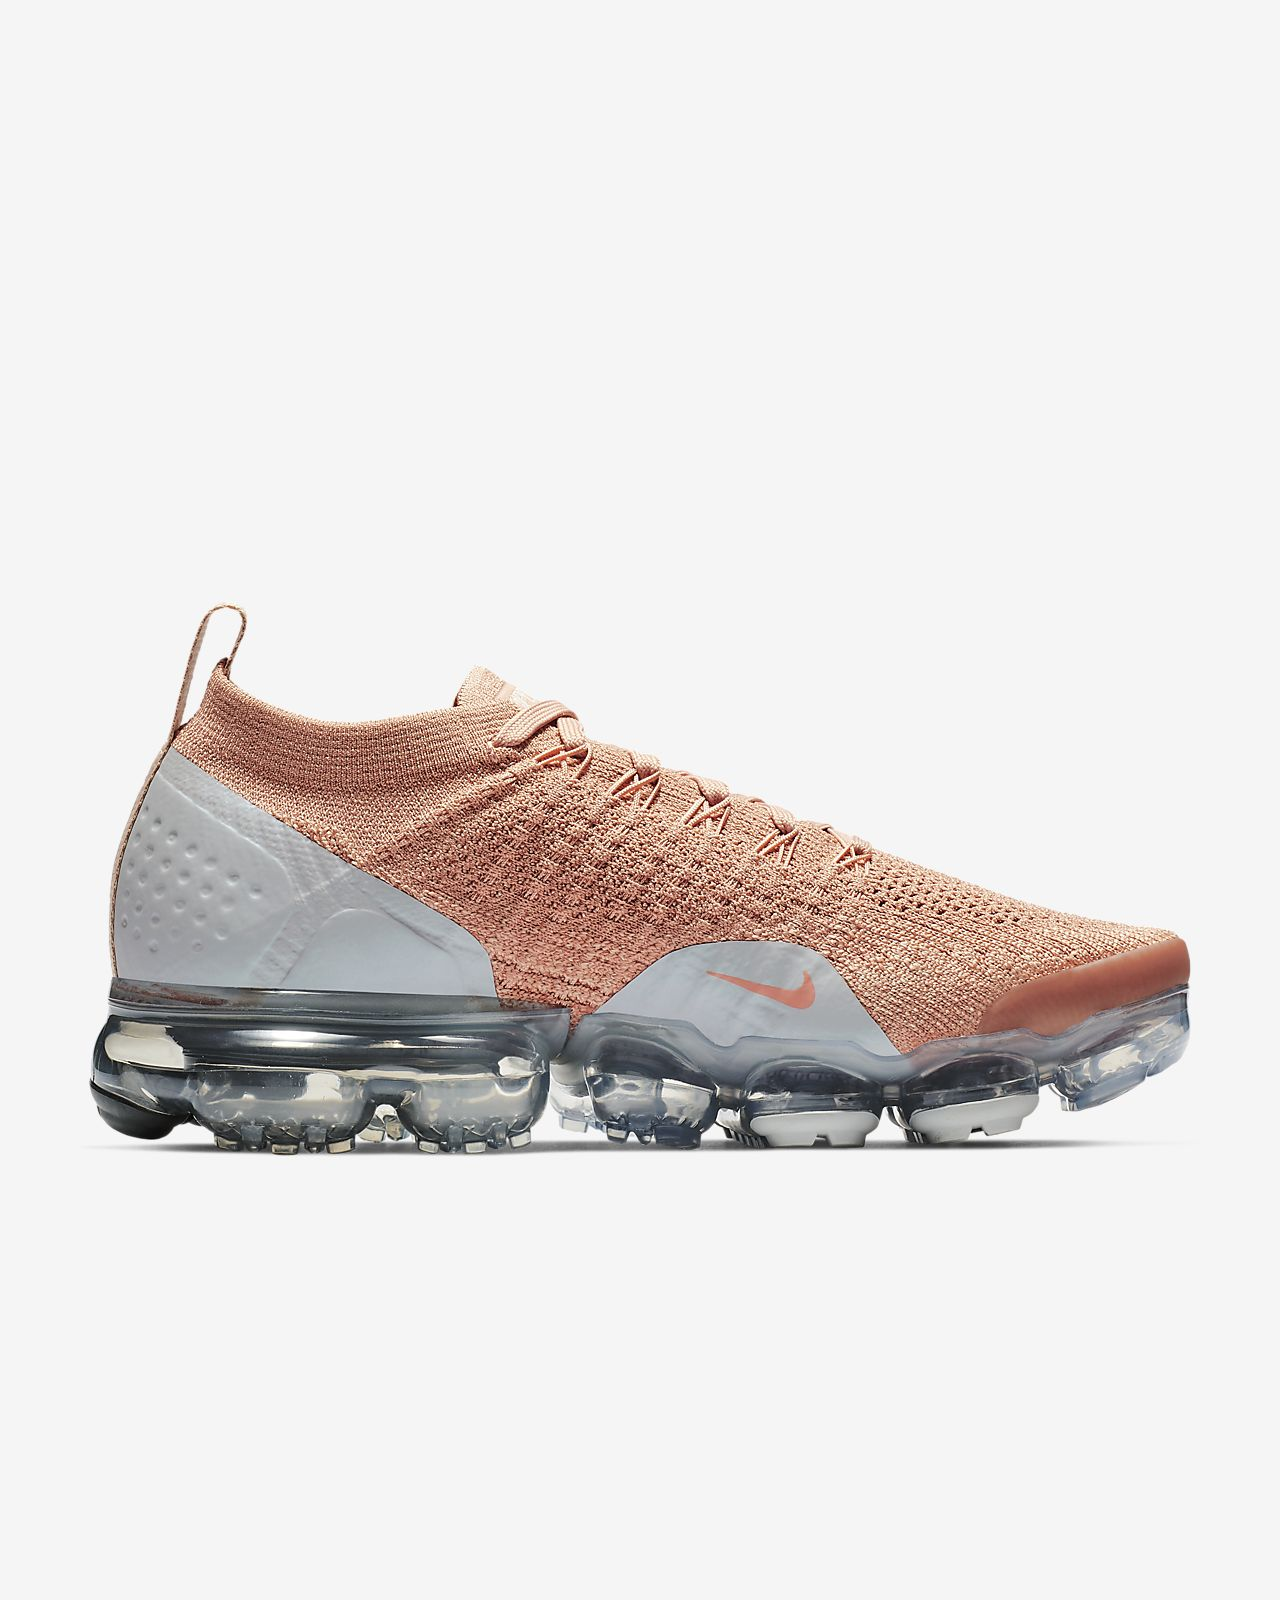 new product fbd1a a7c4a ... Nike Air VaporMax Flyknit 2 Women s Shoe